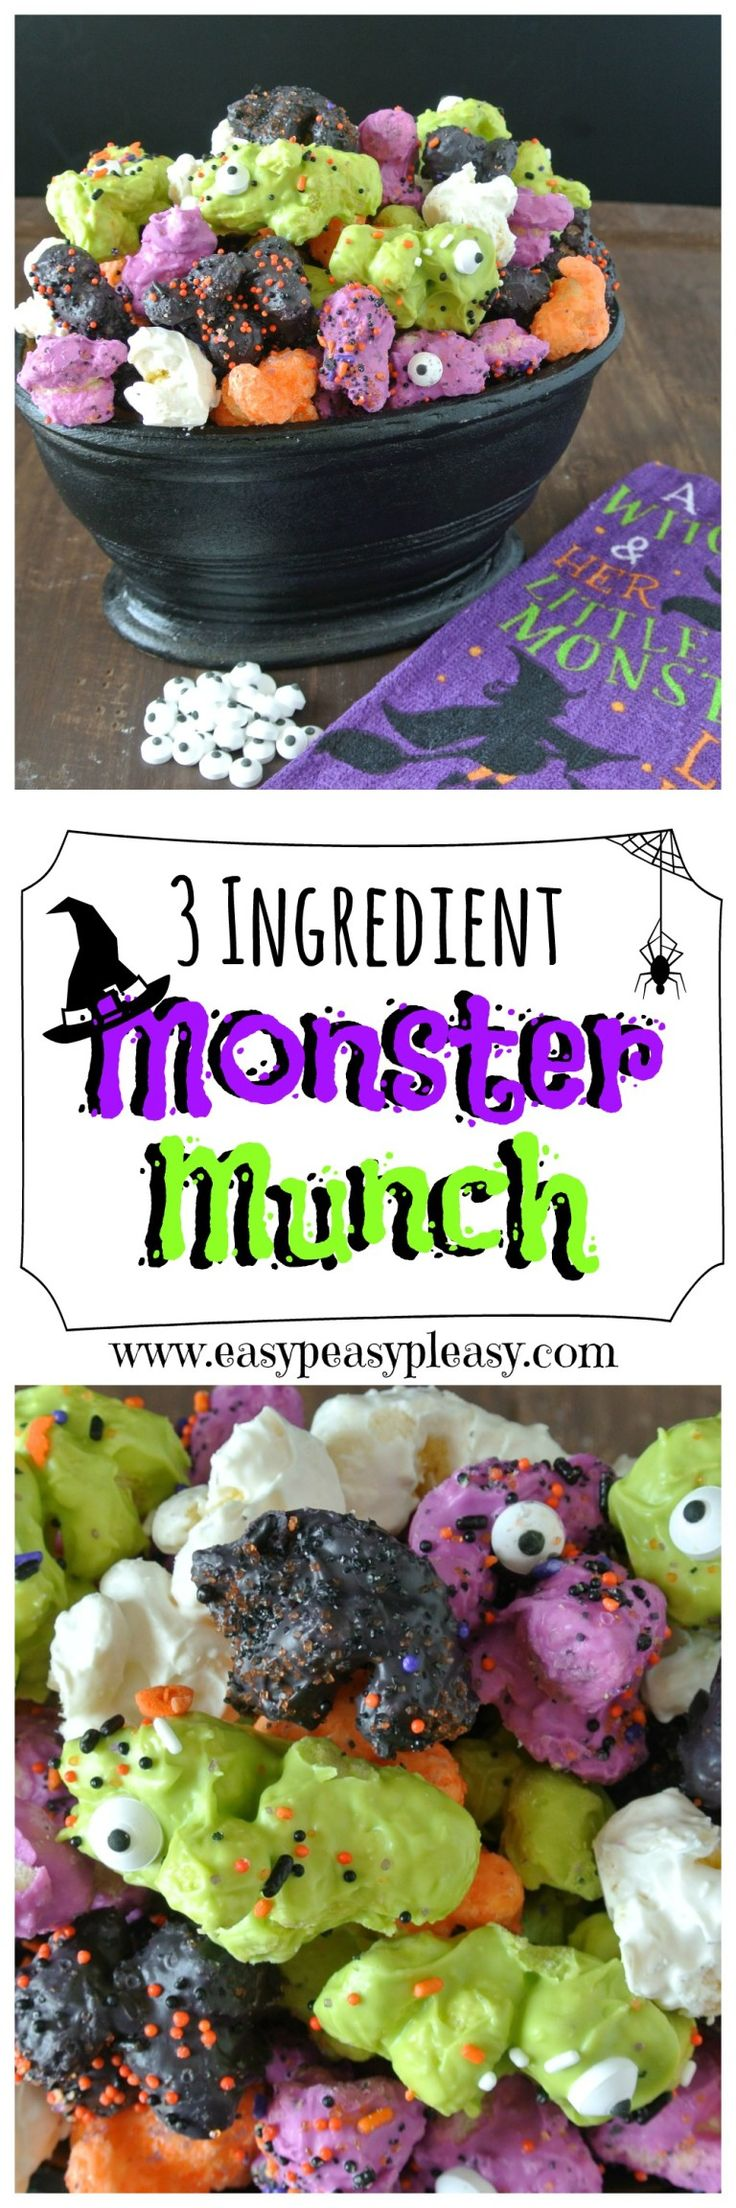 Monster munch: Popcorn gets coated with candy melts and sprinkles in this colorful Halloween snack.